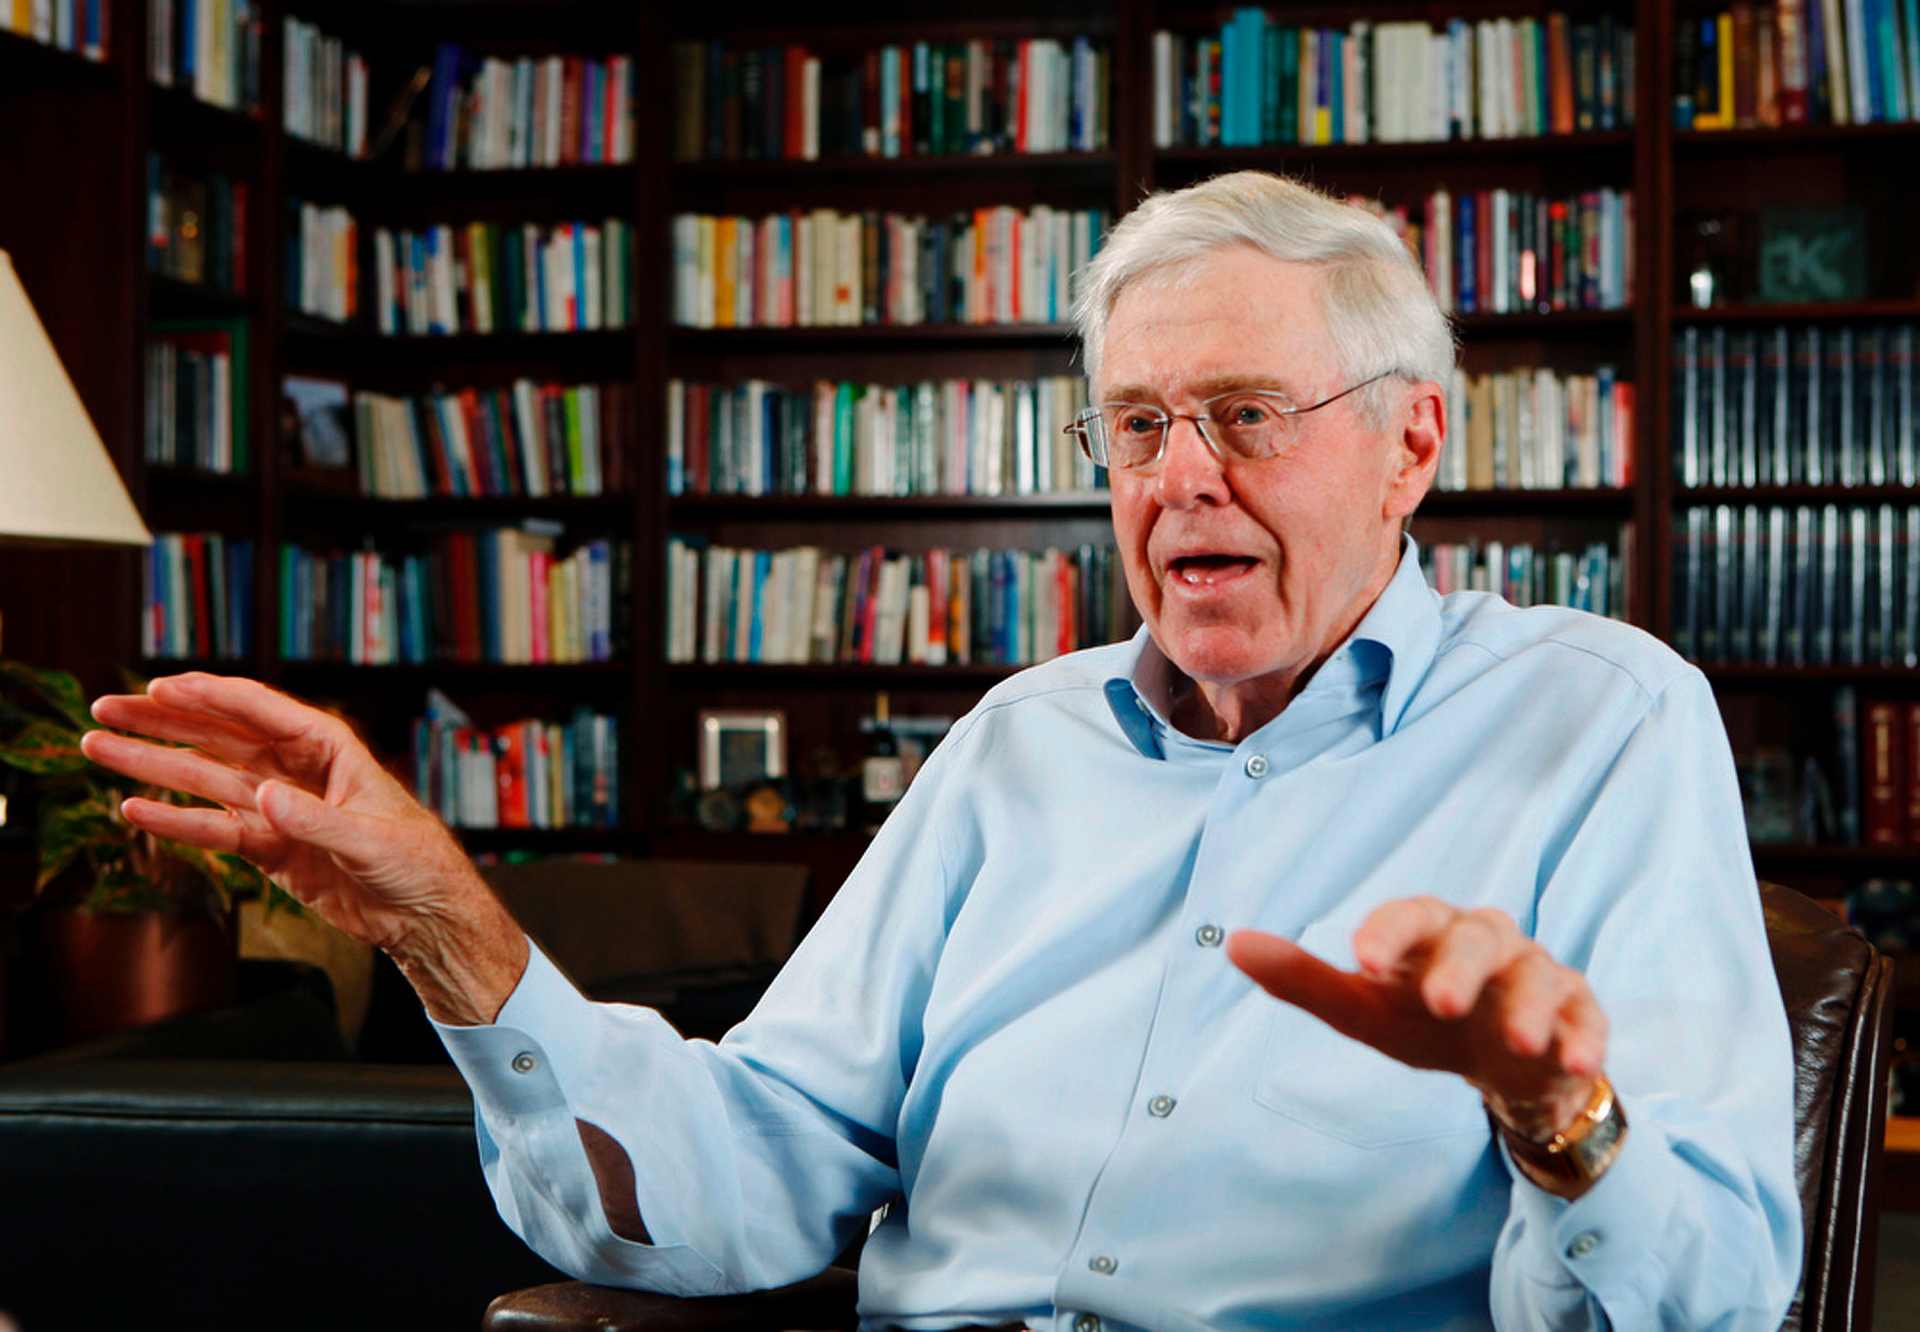 Koch tackles poverty by coaching nonprofits on business